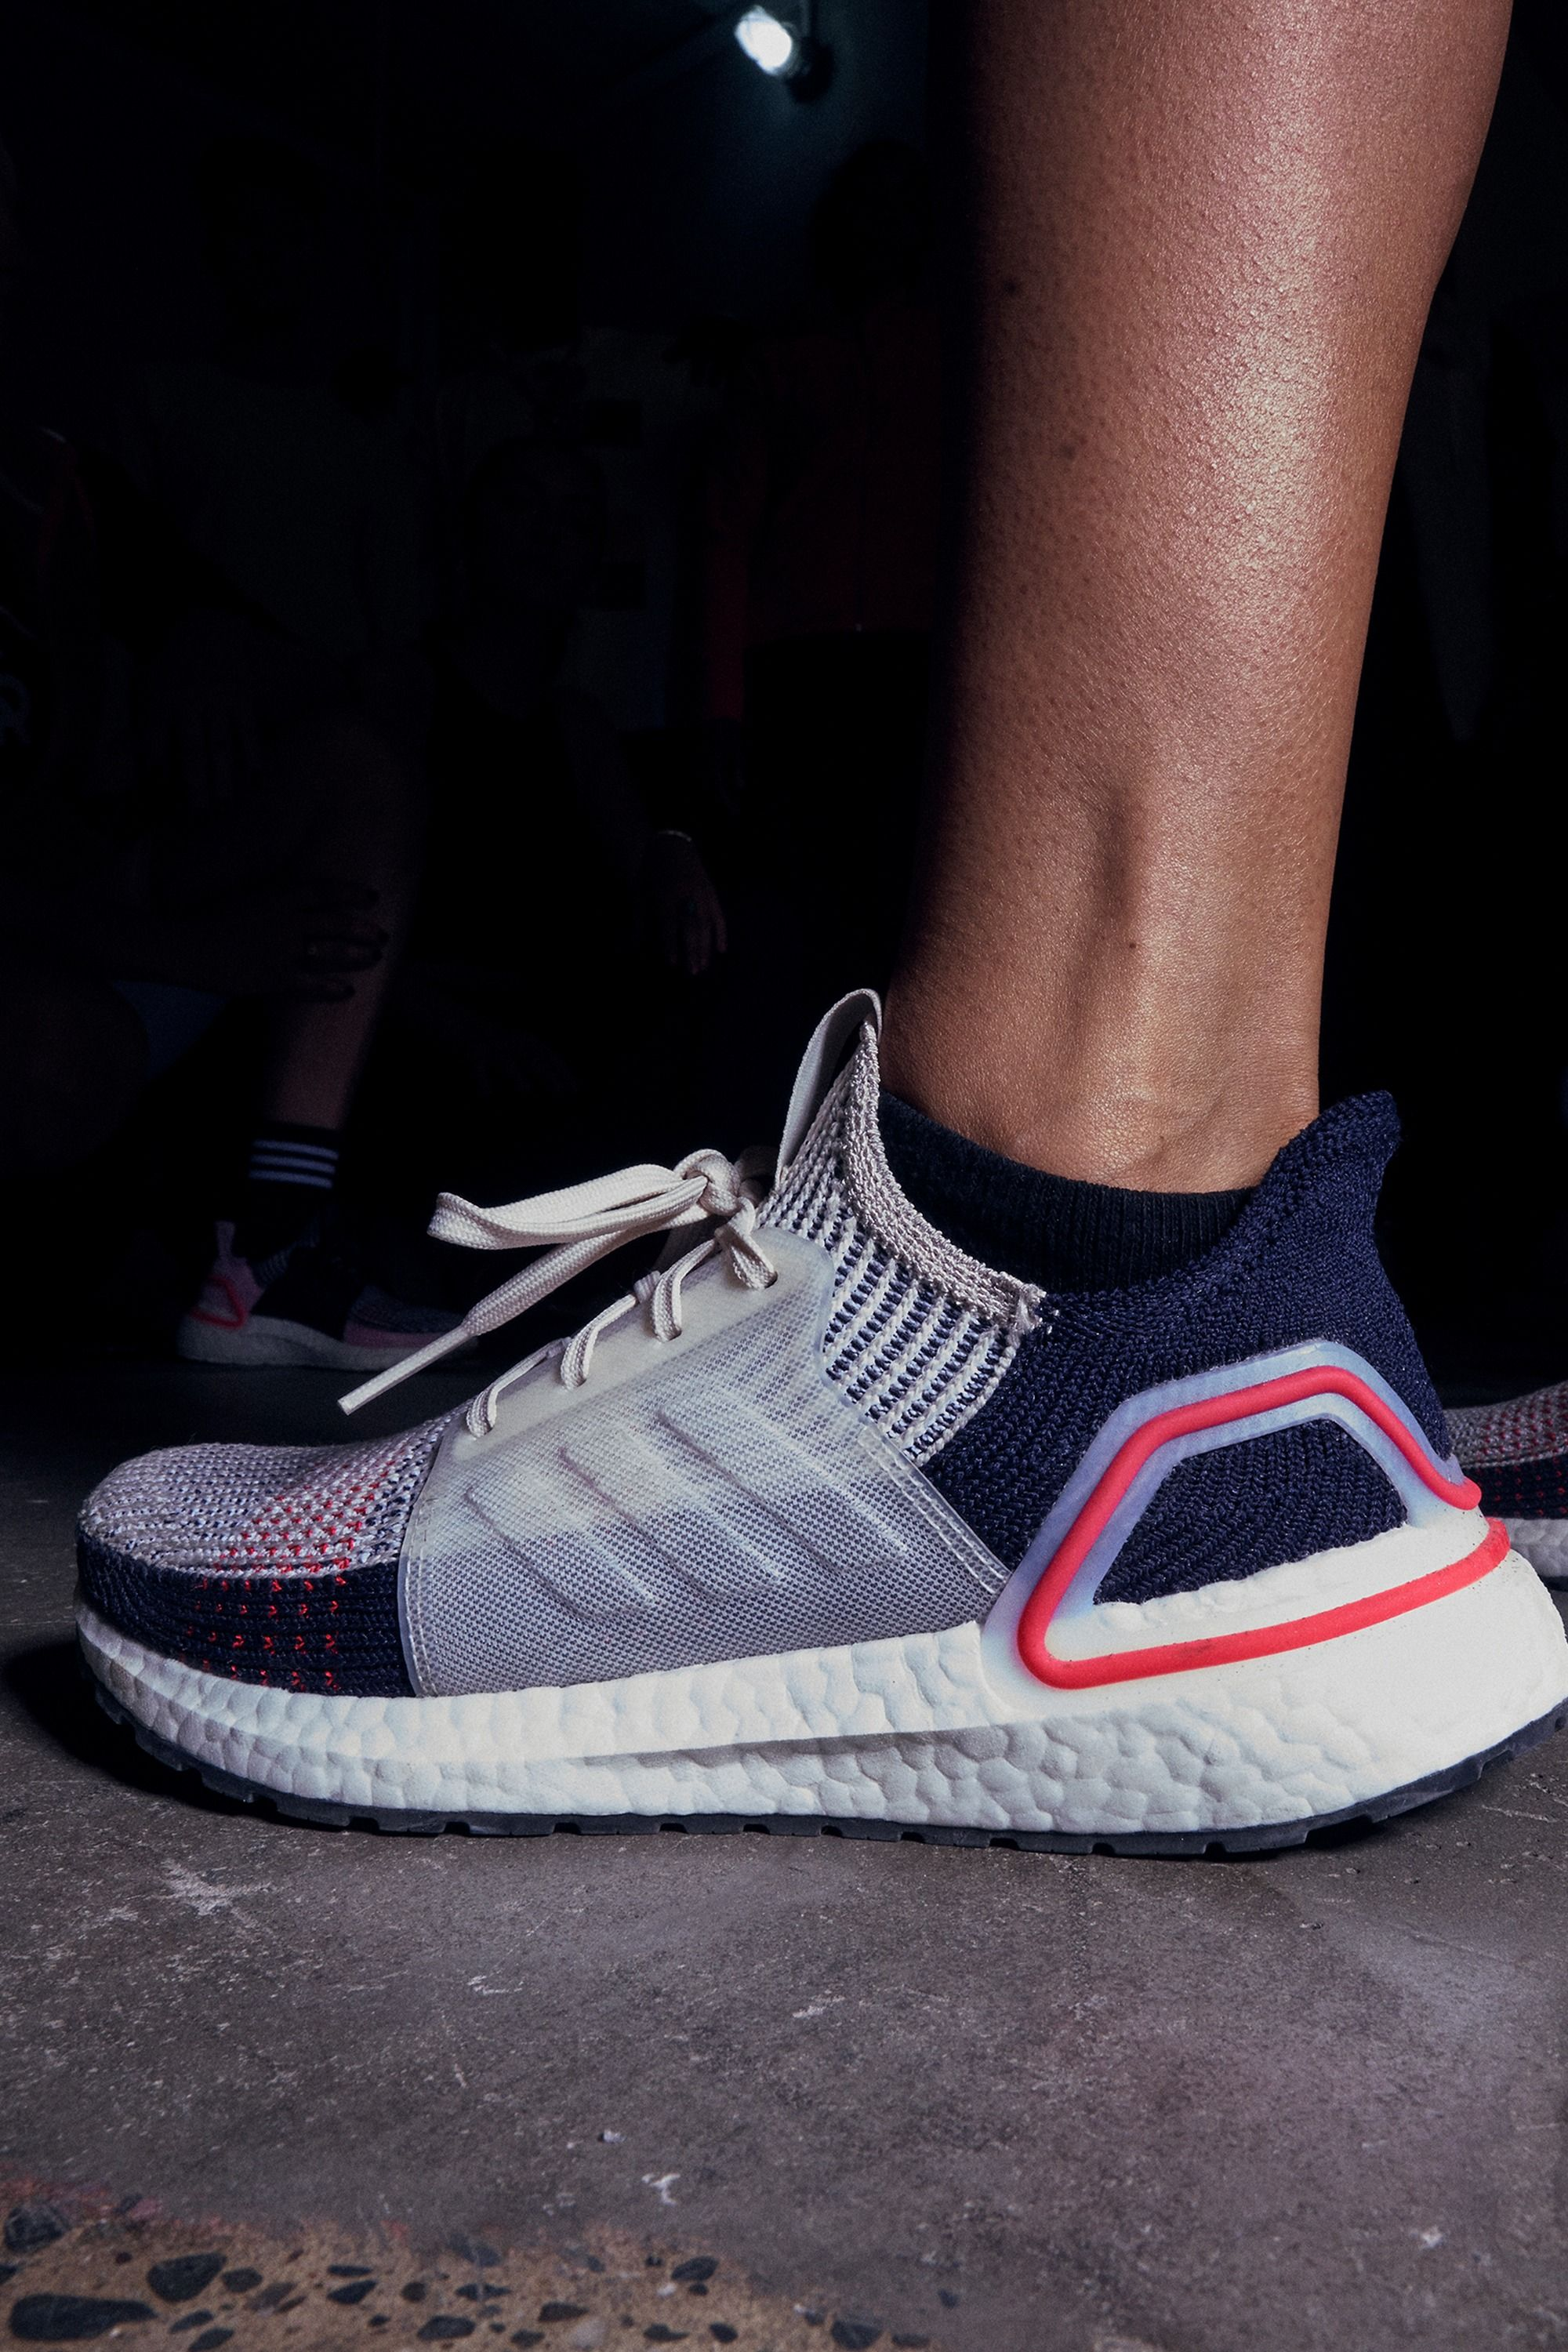 buy popular 59f3b 443d3 Reboosted and ready for blast off. The  ULTRABOOST 19 returns back every  ounce of energy you put in to your runs.